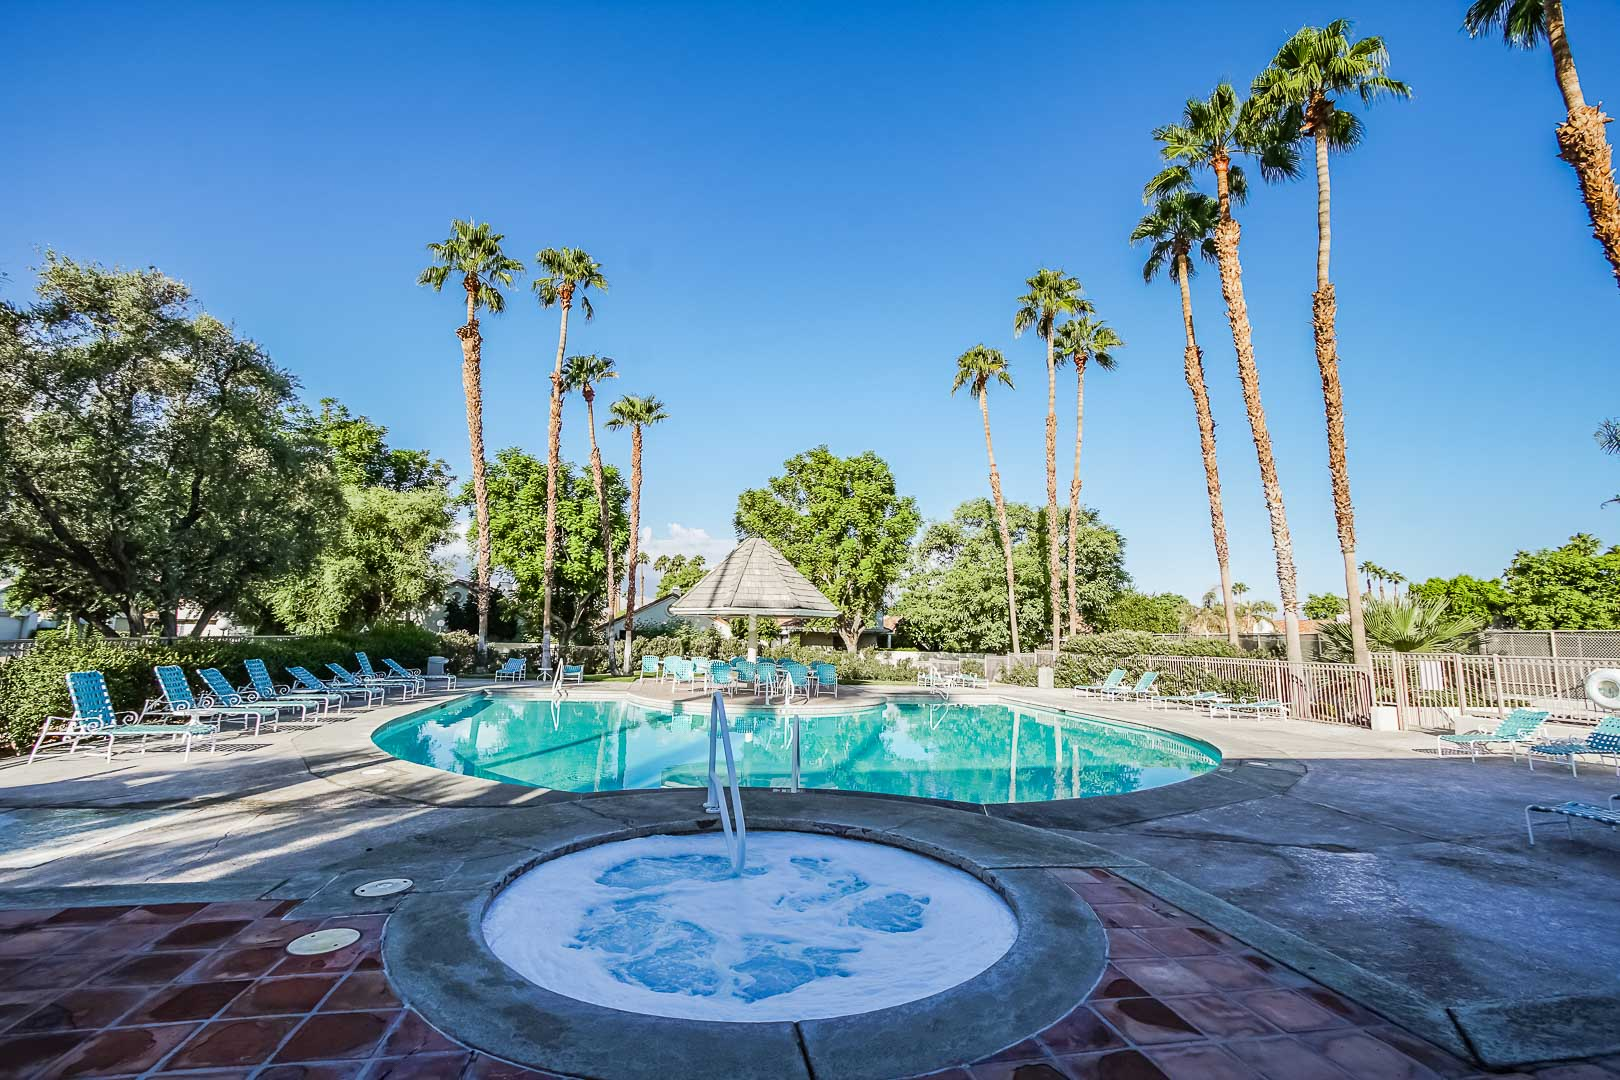 A scenic pool and Jacuzzi area at VRI Americas' Desert Breezes Resort in California